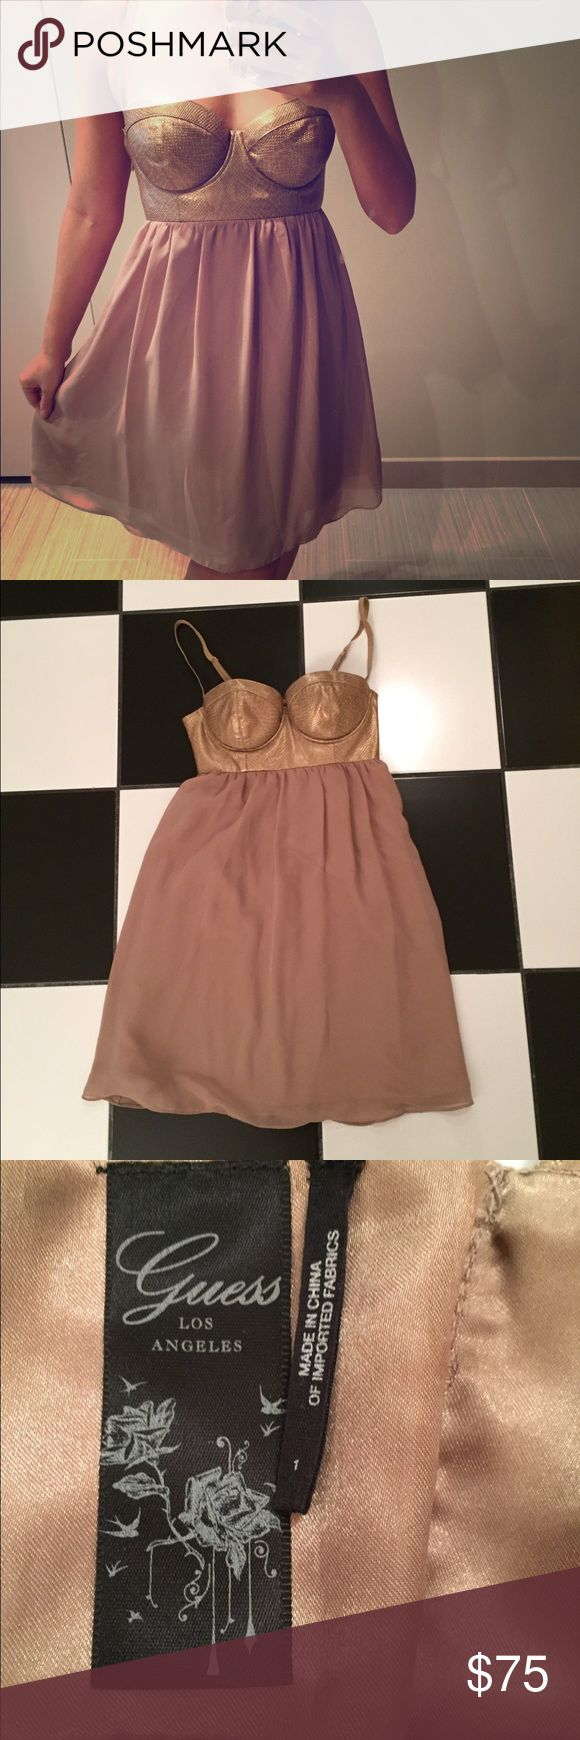 Gold Guess dress 🌟 Gold Guess dress. Gentle wear in good condition. No trades. Please ask all questions before purchasing and use the offer button, thanks! Guess Dresses